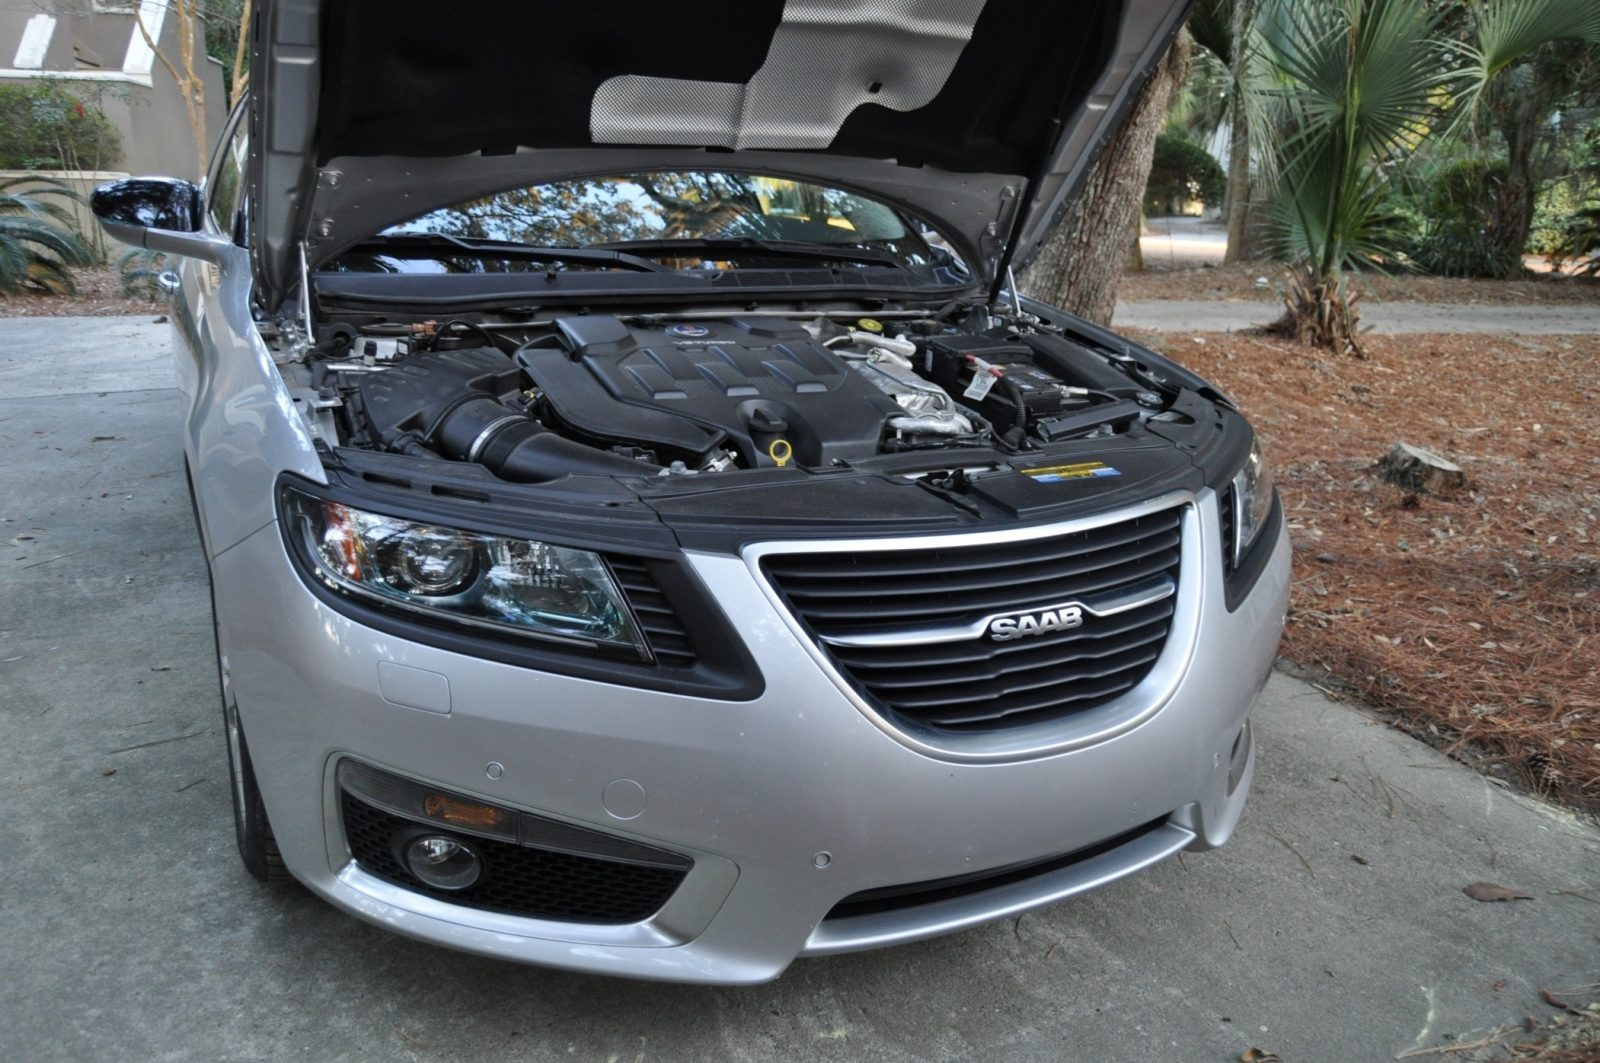 2013 SAAB 9-5 Turbo6 XWD Aero -- 48 HQ Photos -- The Coolest AWD, Turbo V6 Limo You Cannot Buy 40